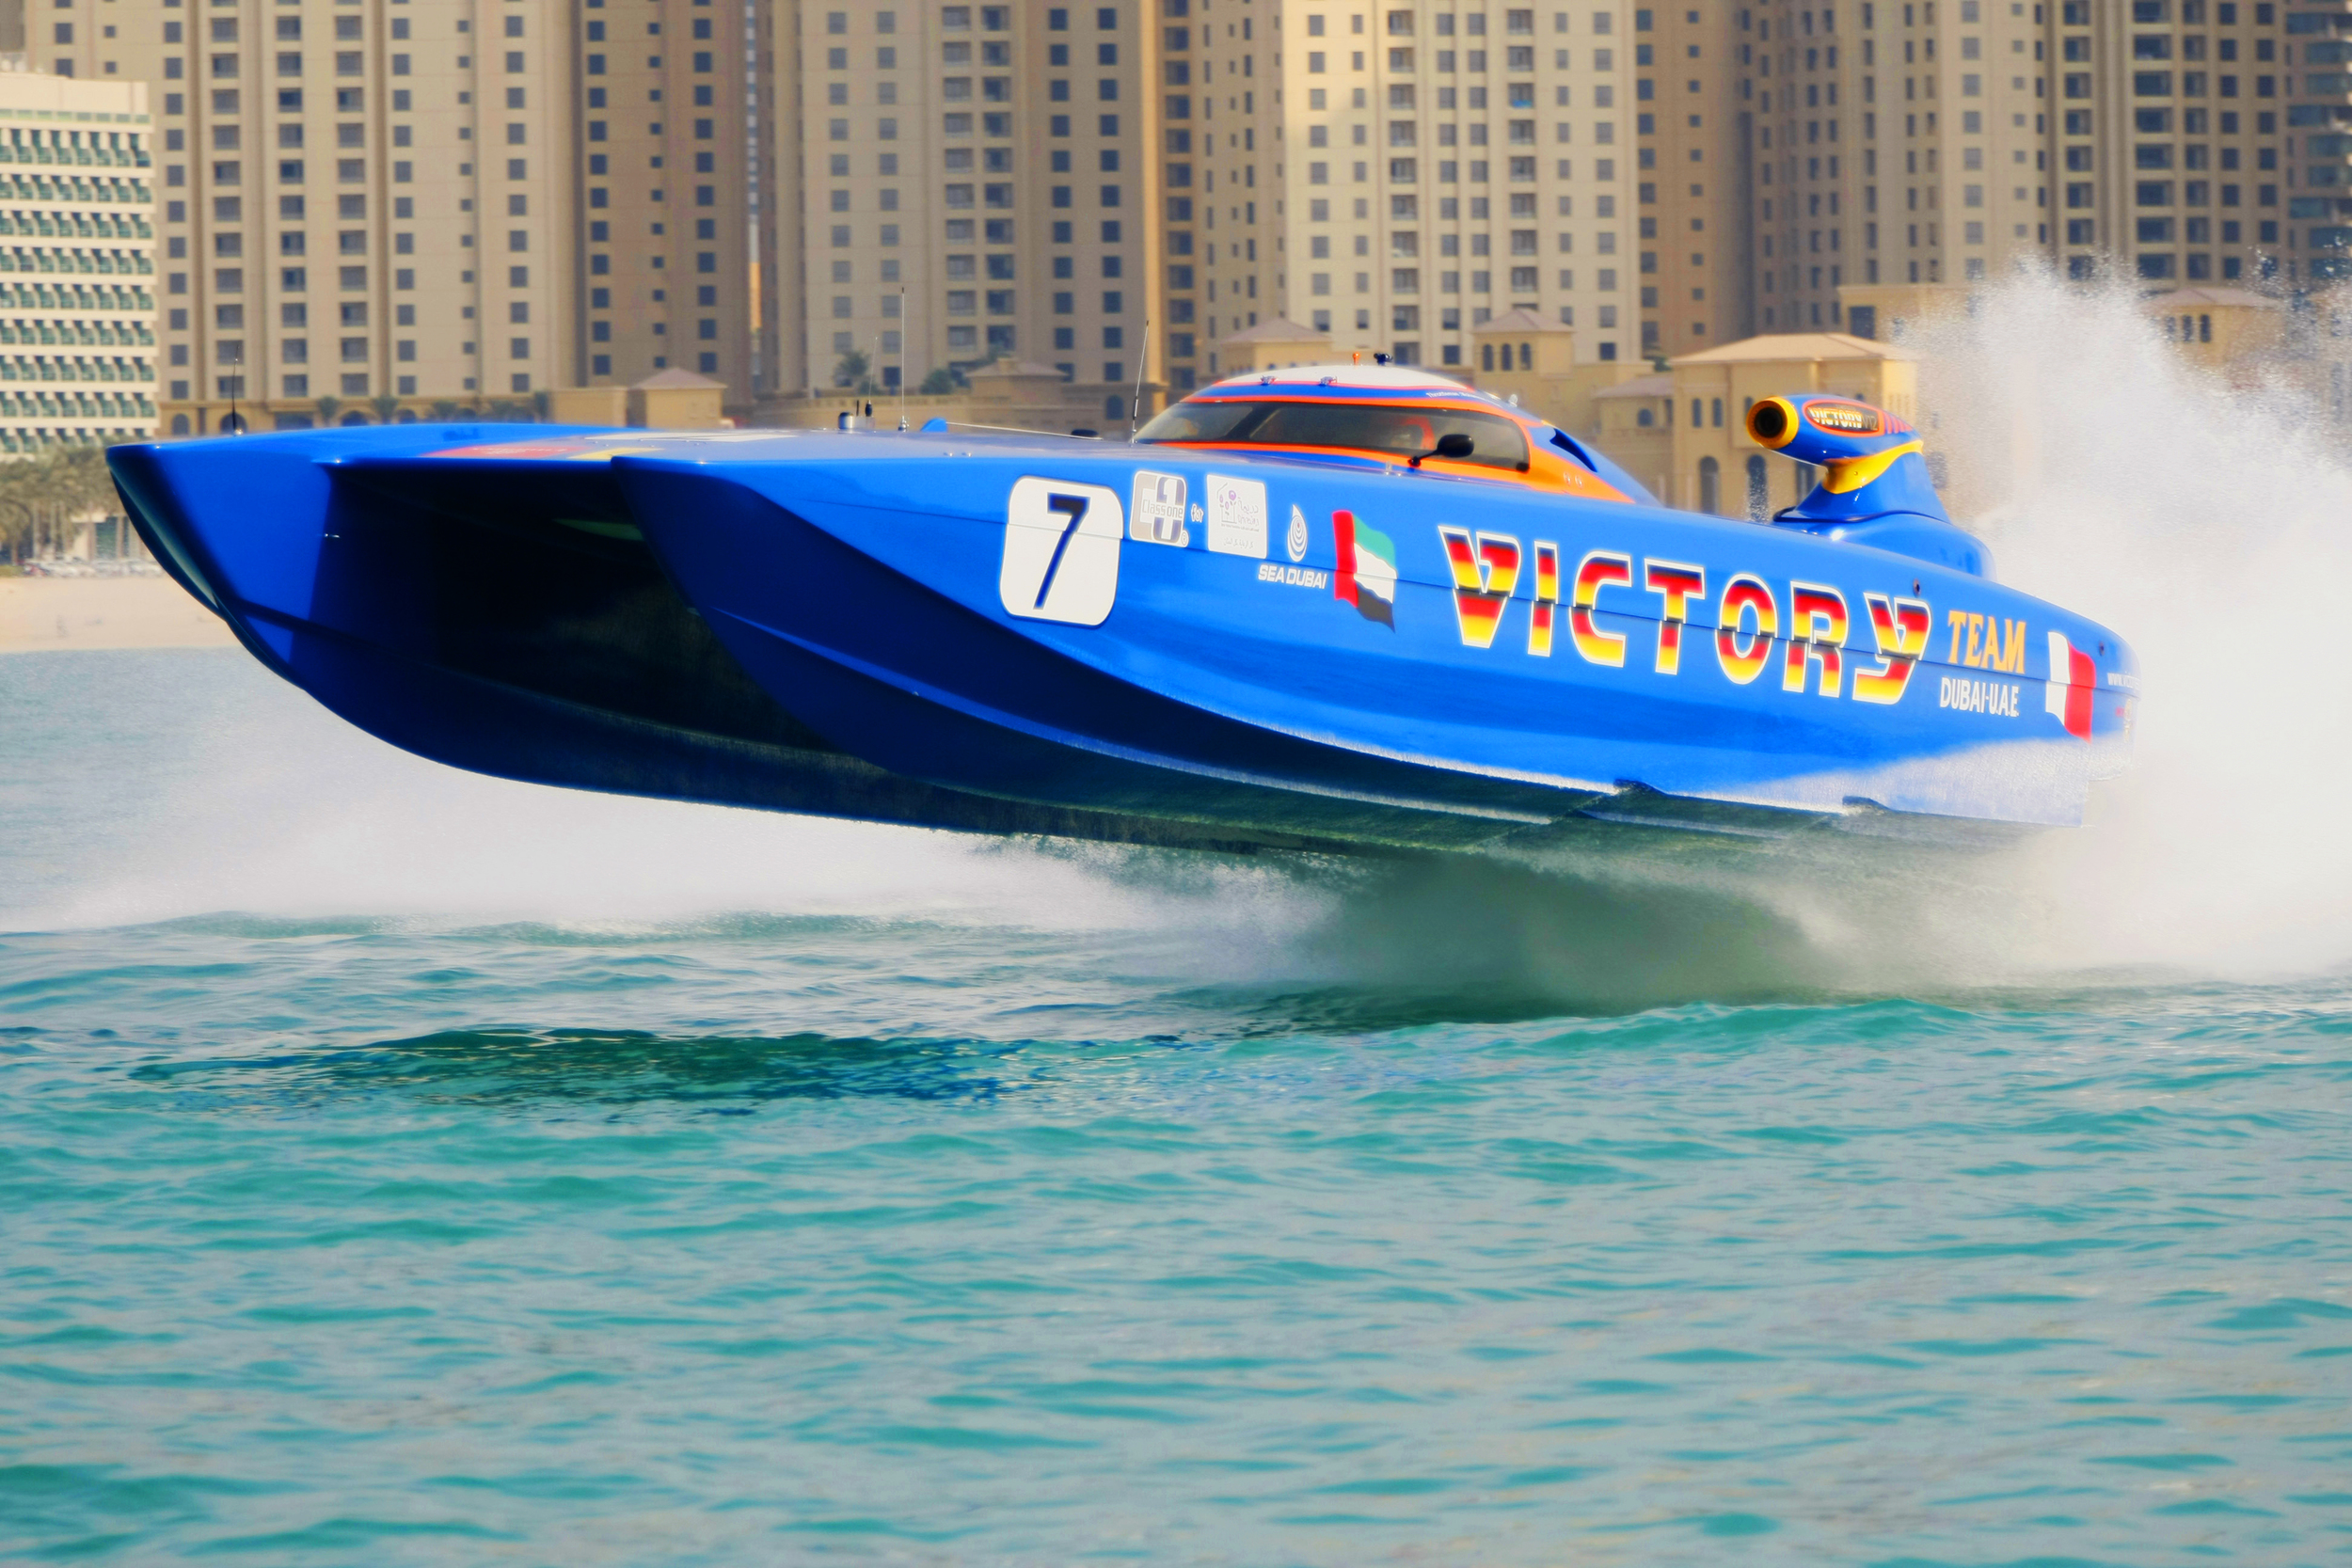 Victory Team Class 1 offshore racing powerboat.